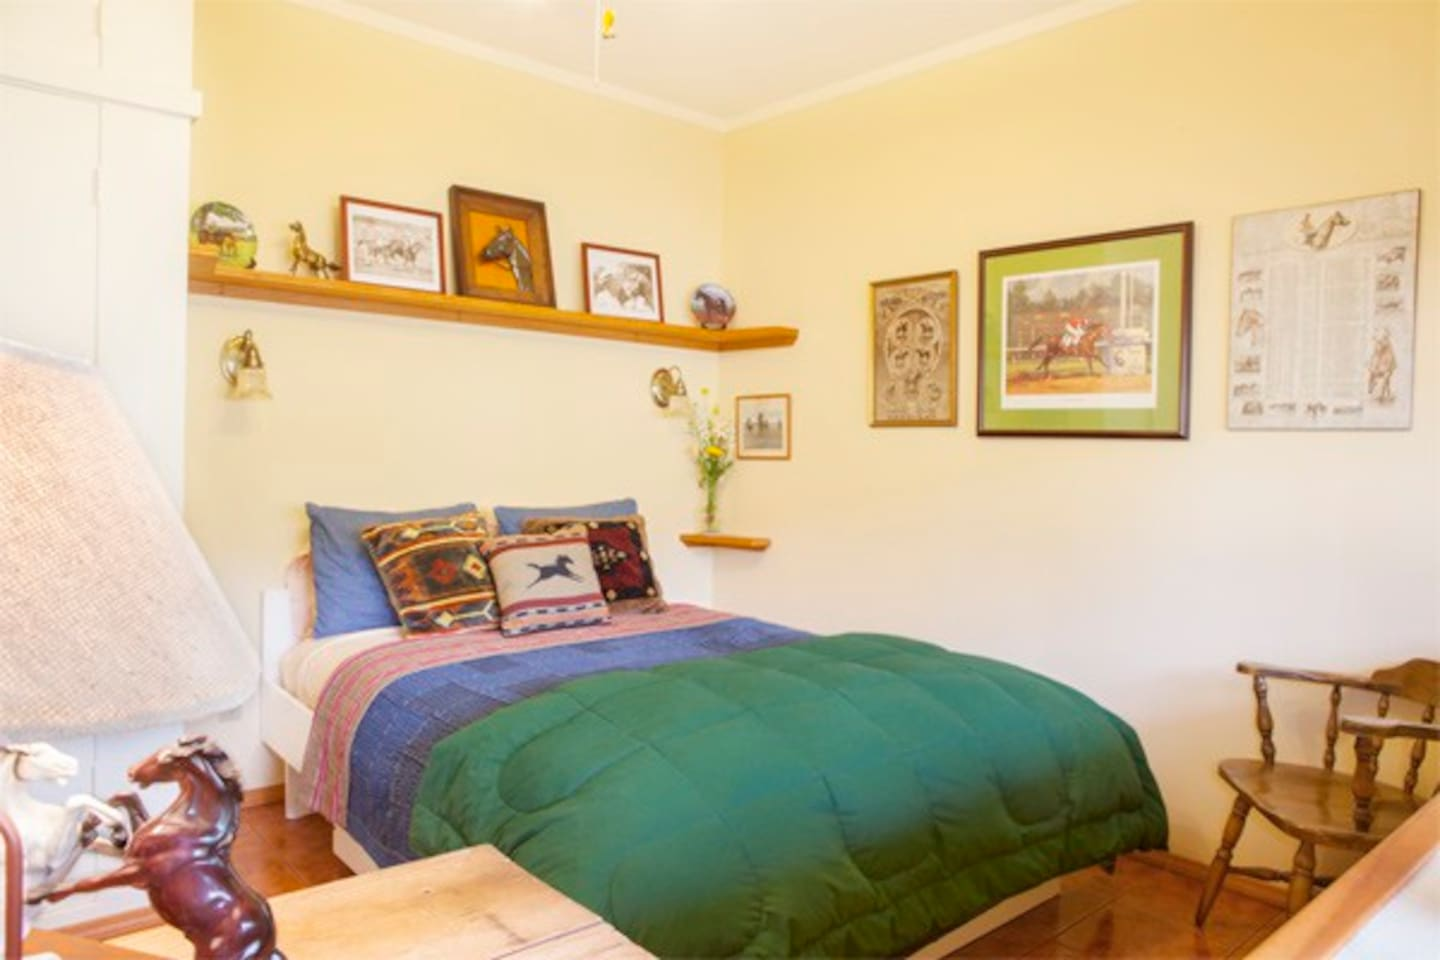 Seabiscuit bedroom with photos and racehorse memorabilia